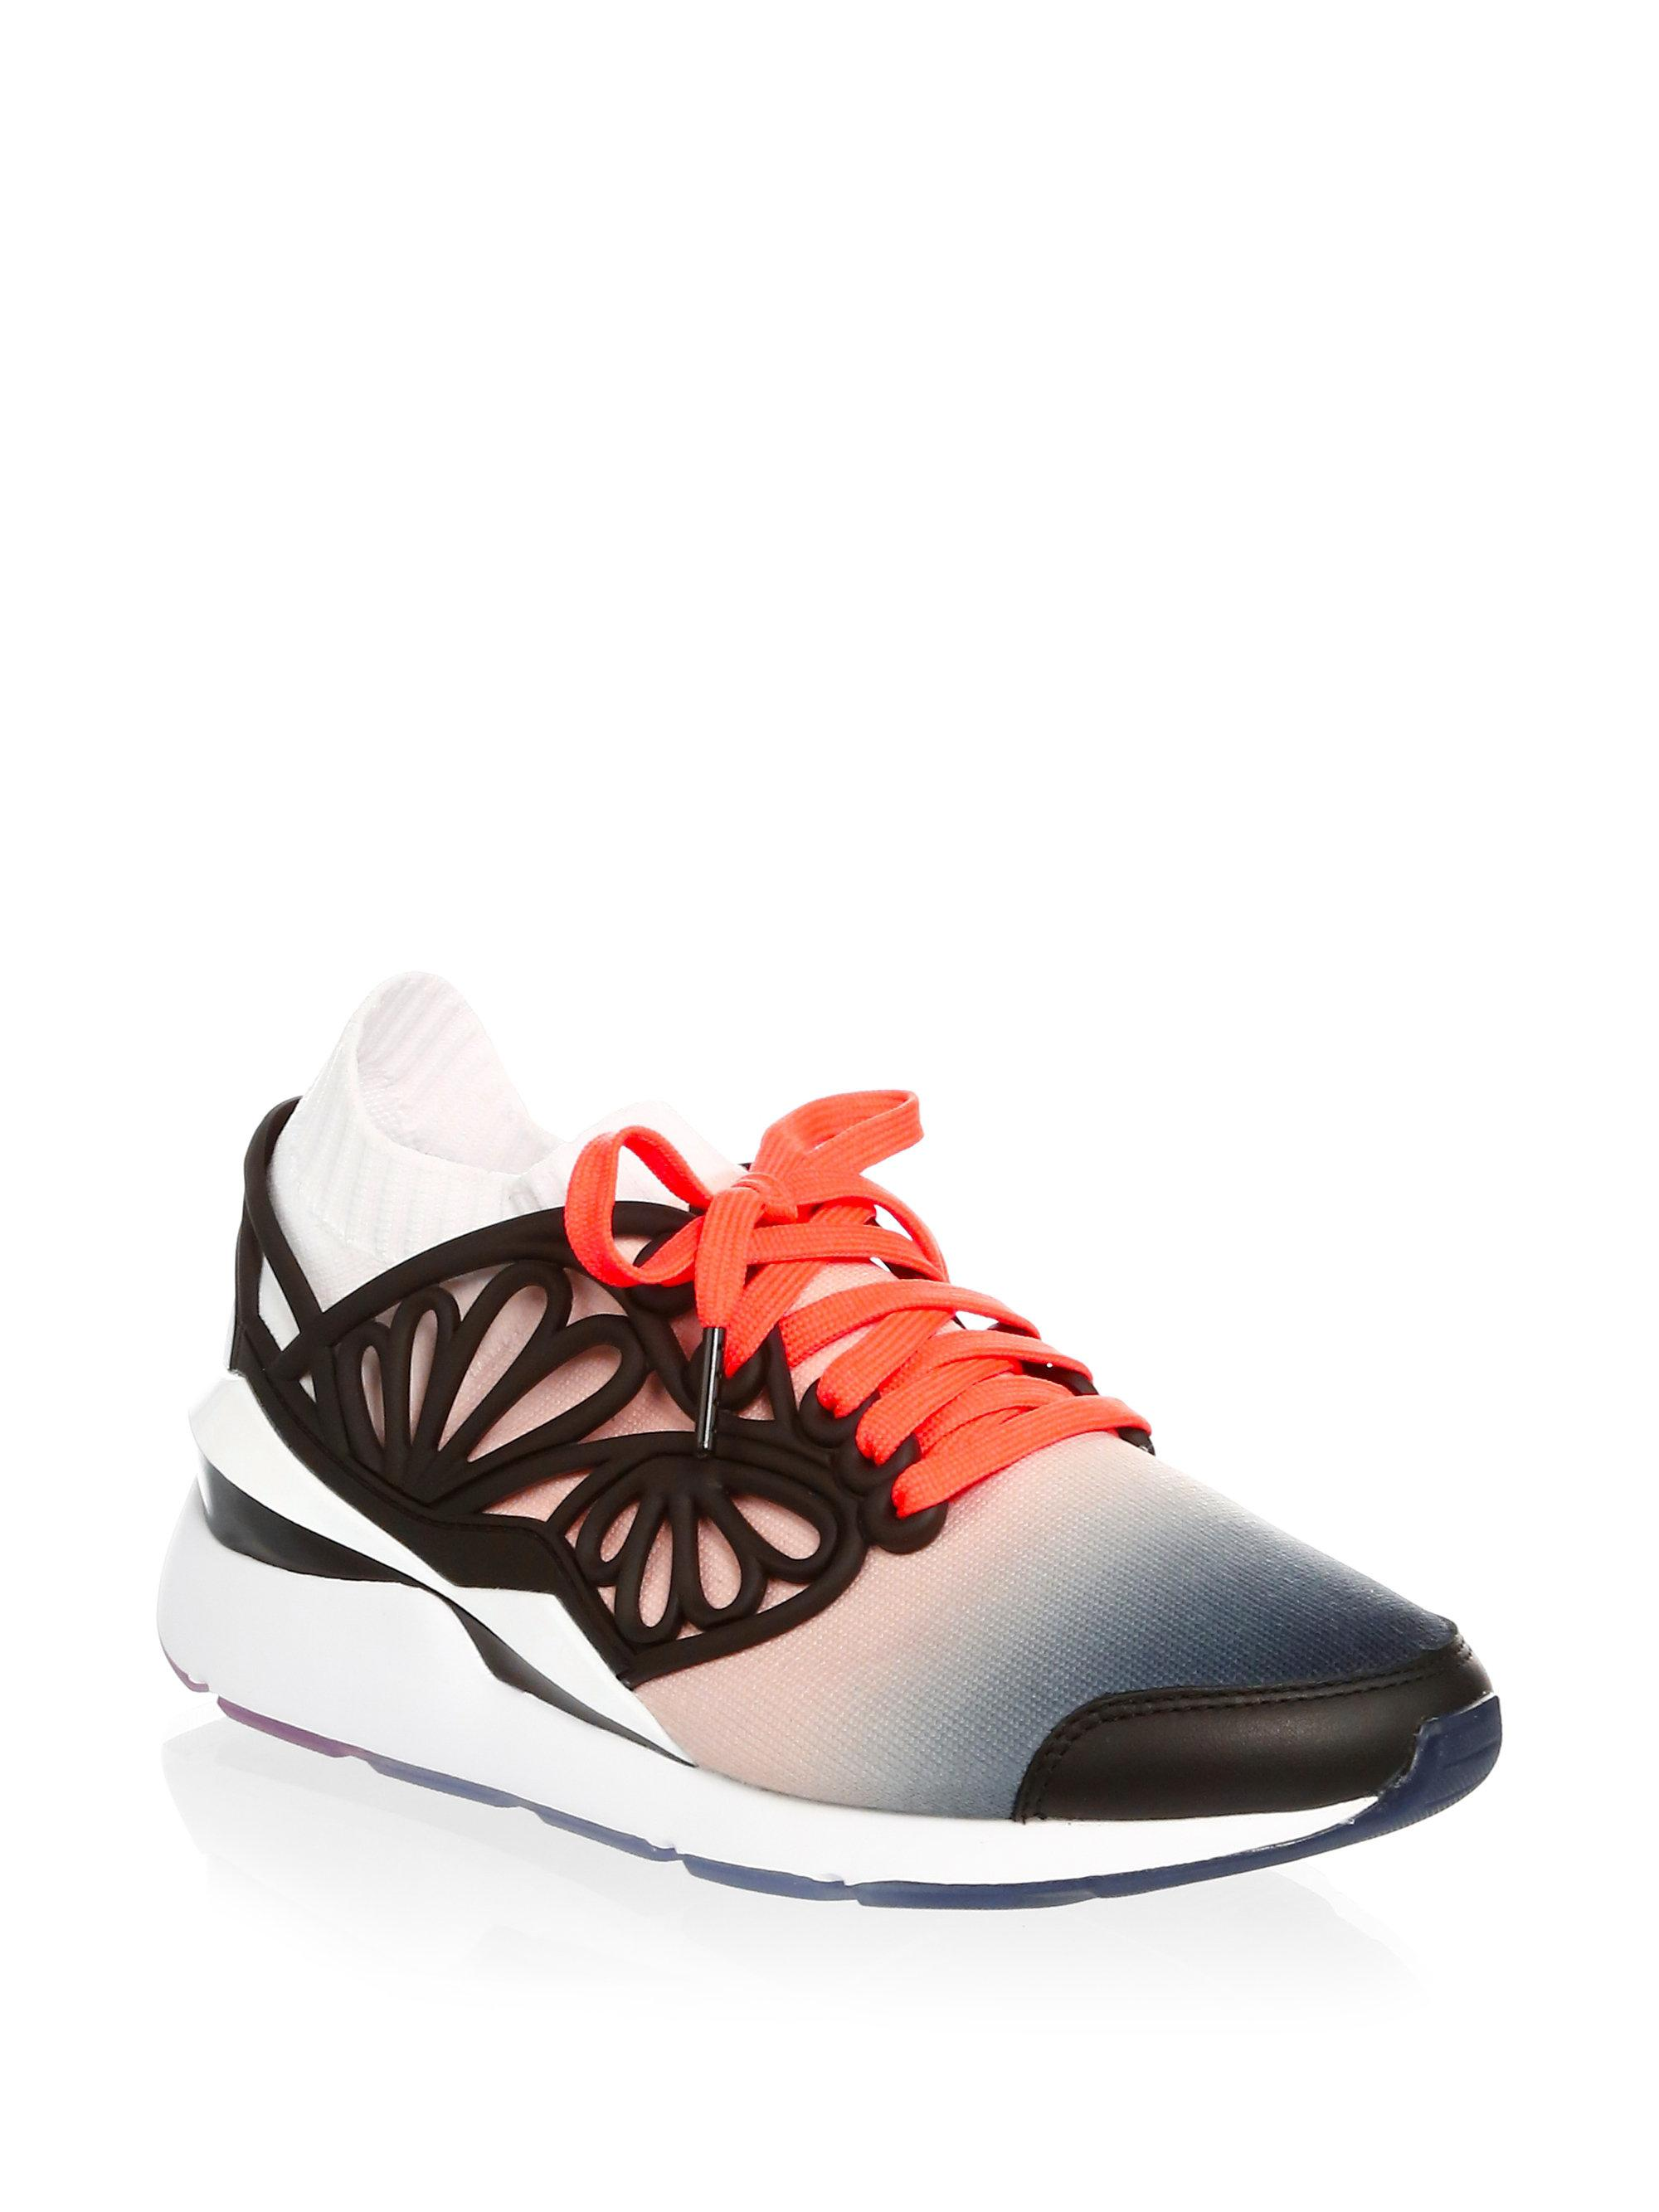 Puma Pearl Cage Fade Leather Sneakers 3sXQ0sRul